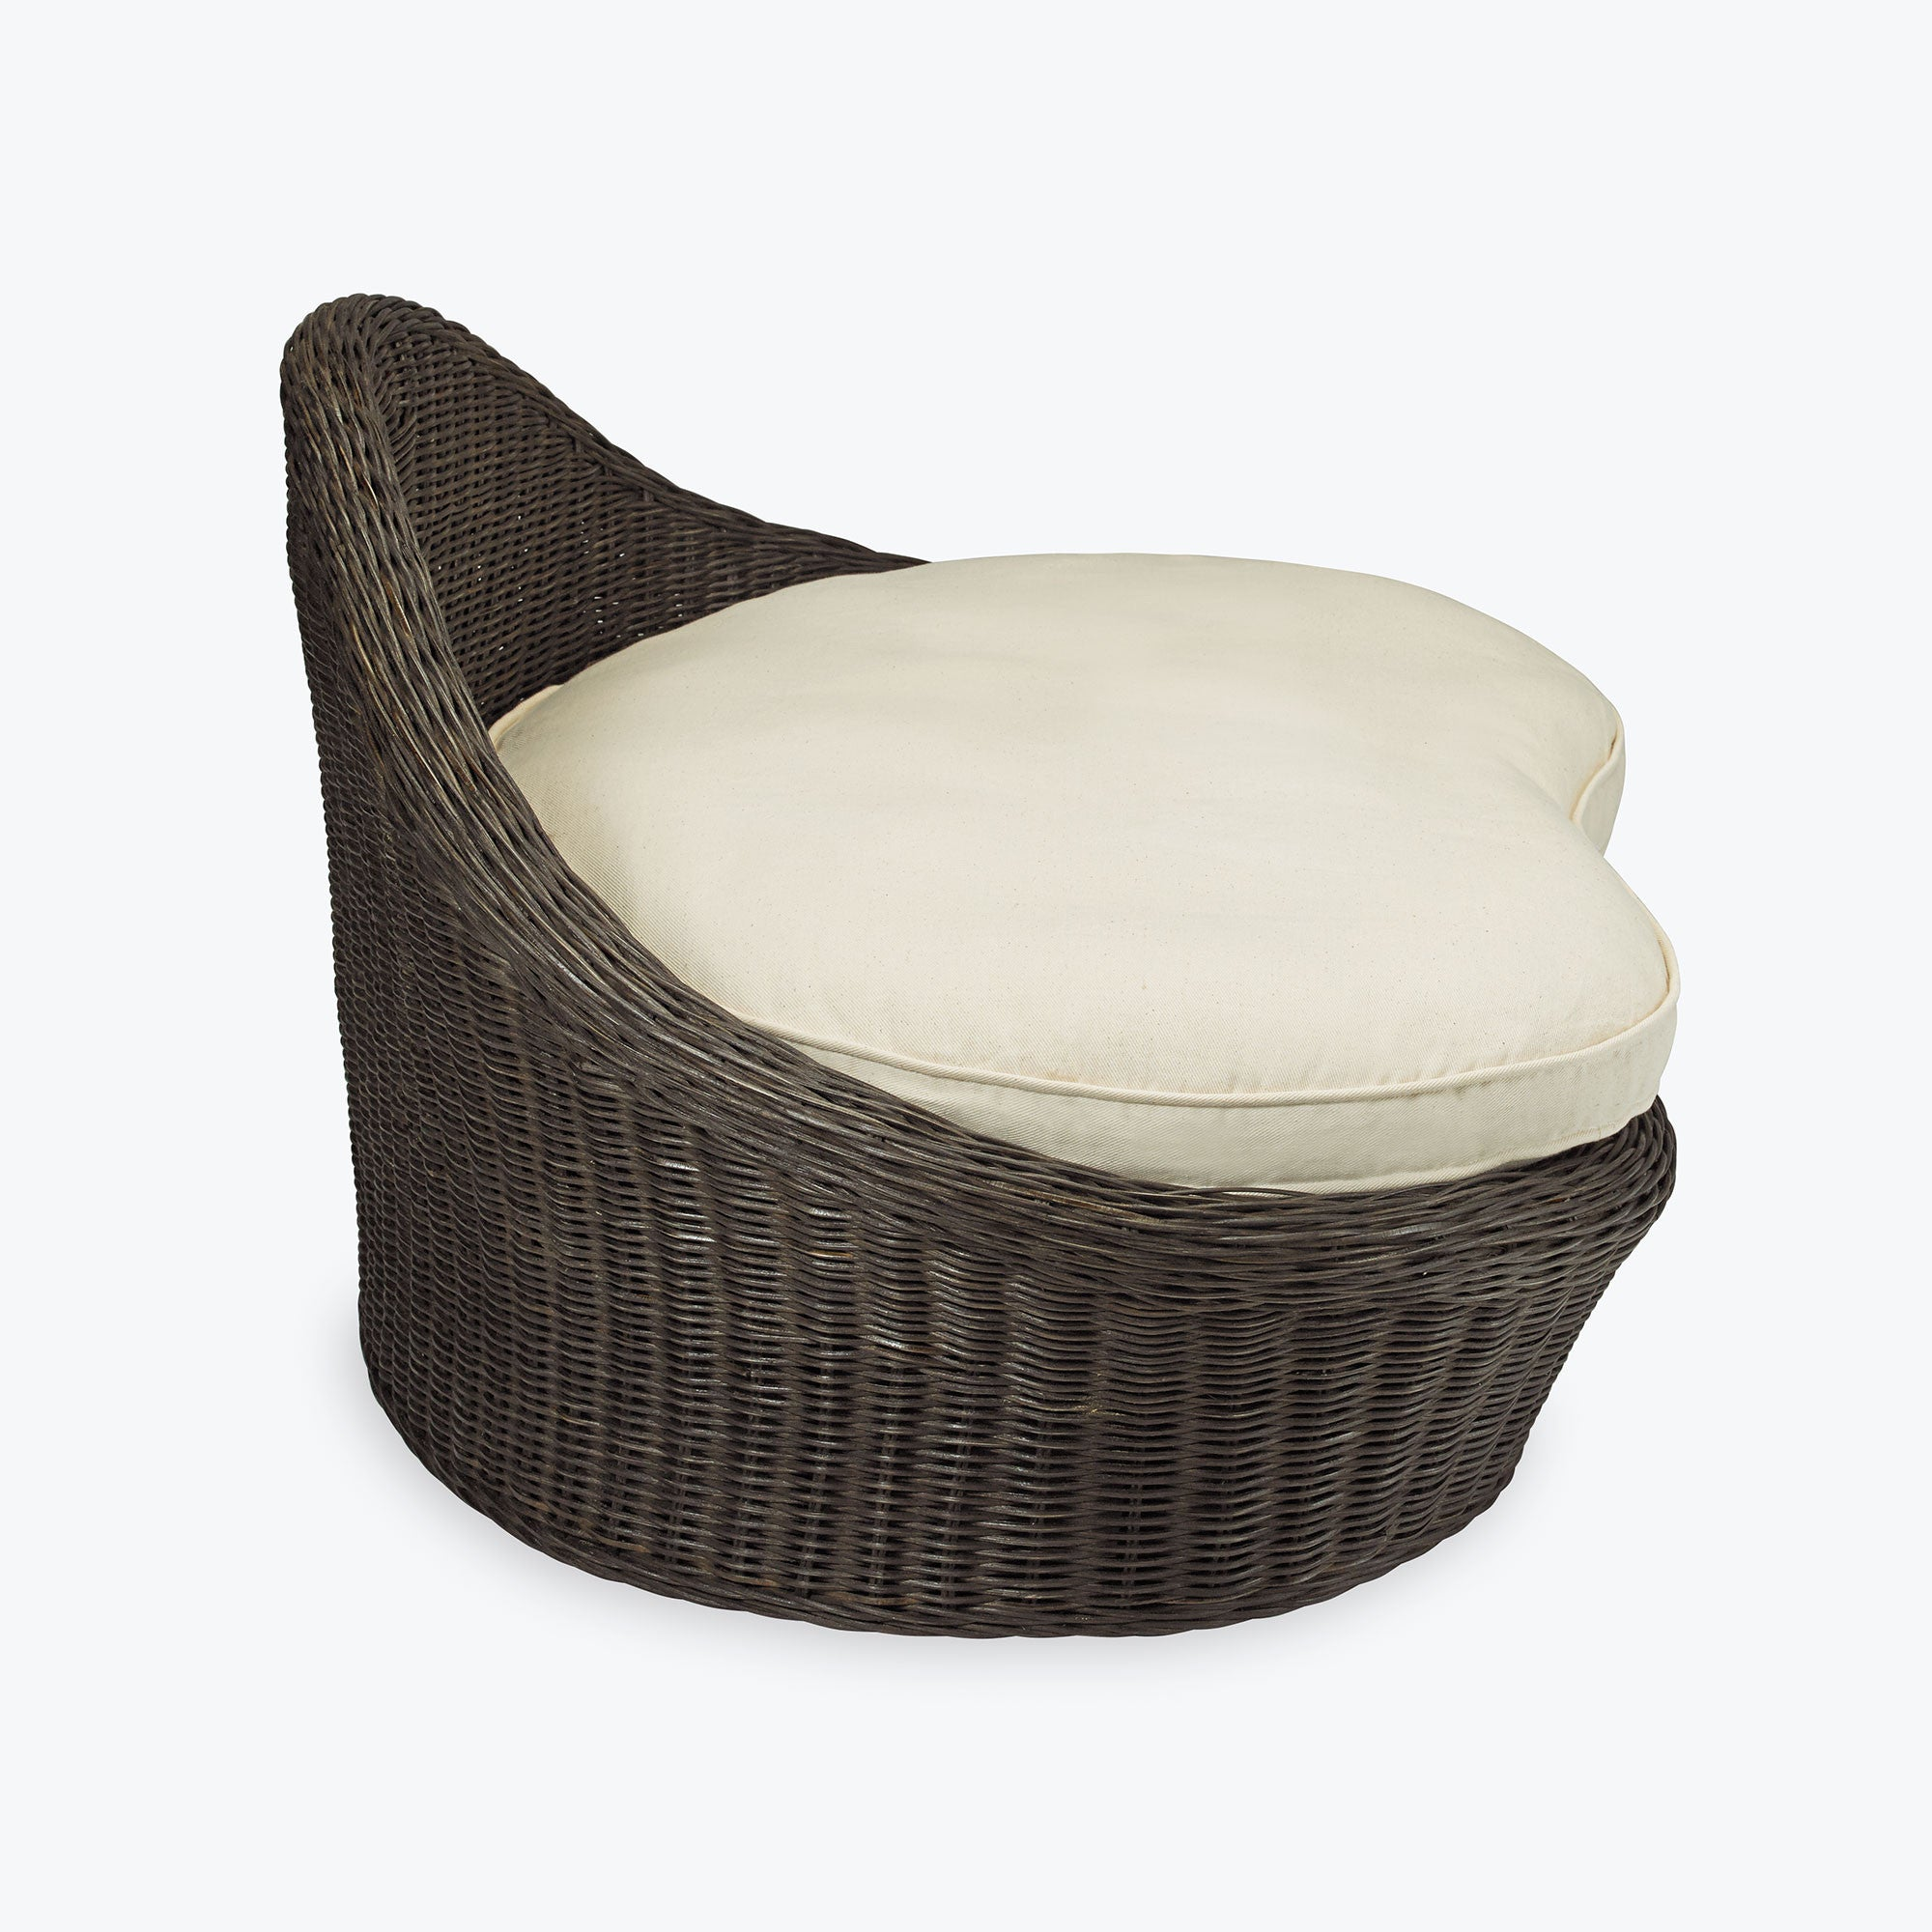 Rattan Meditation Chair